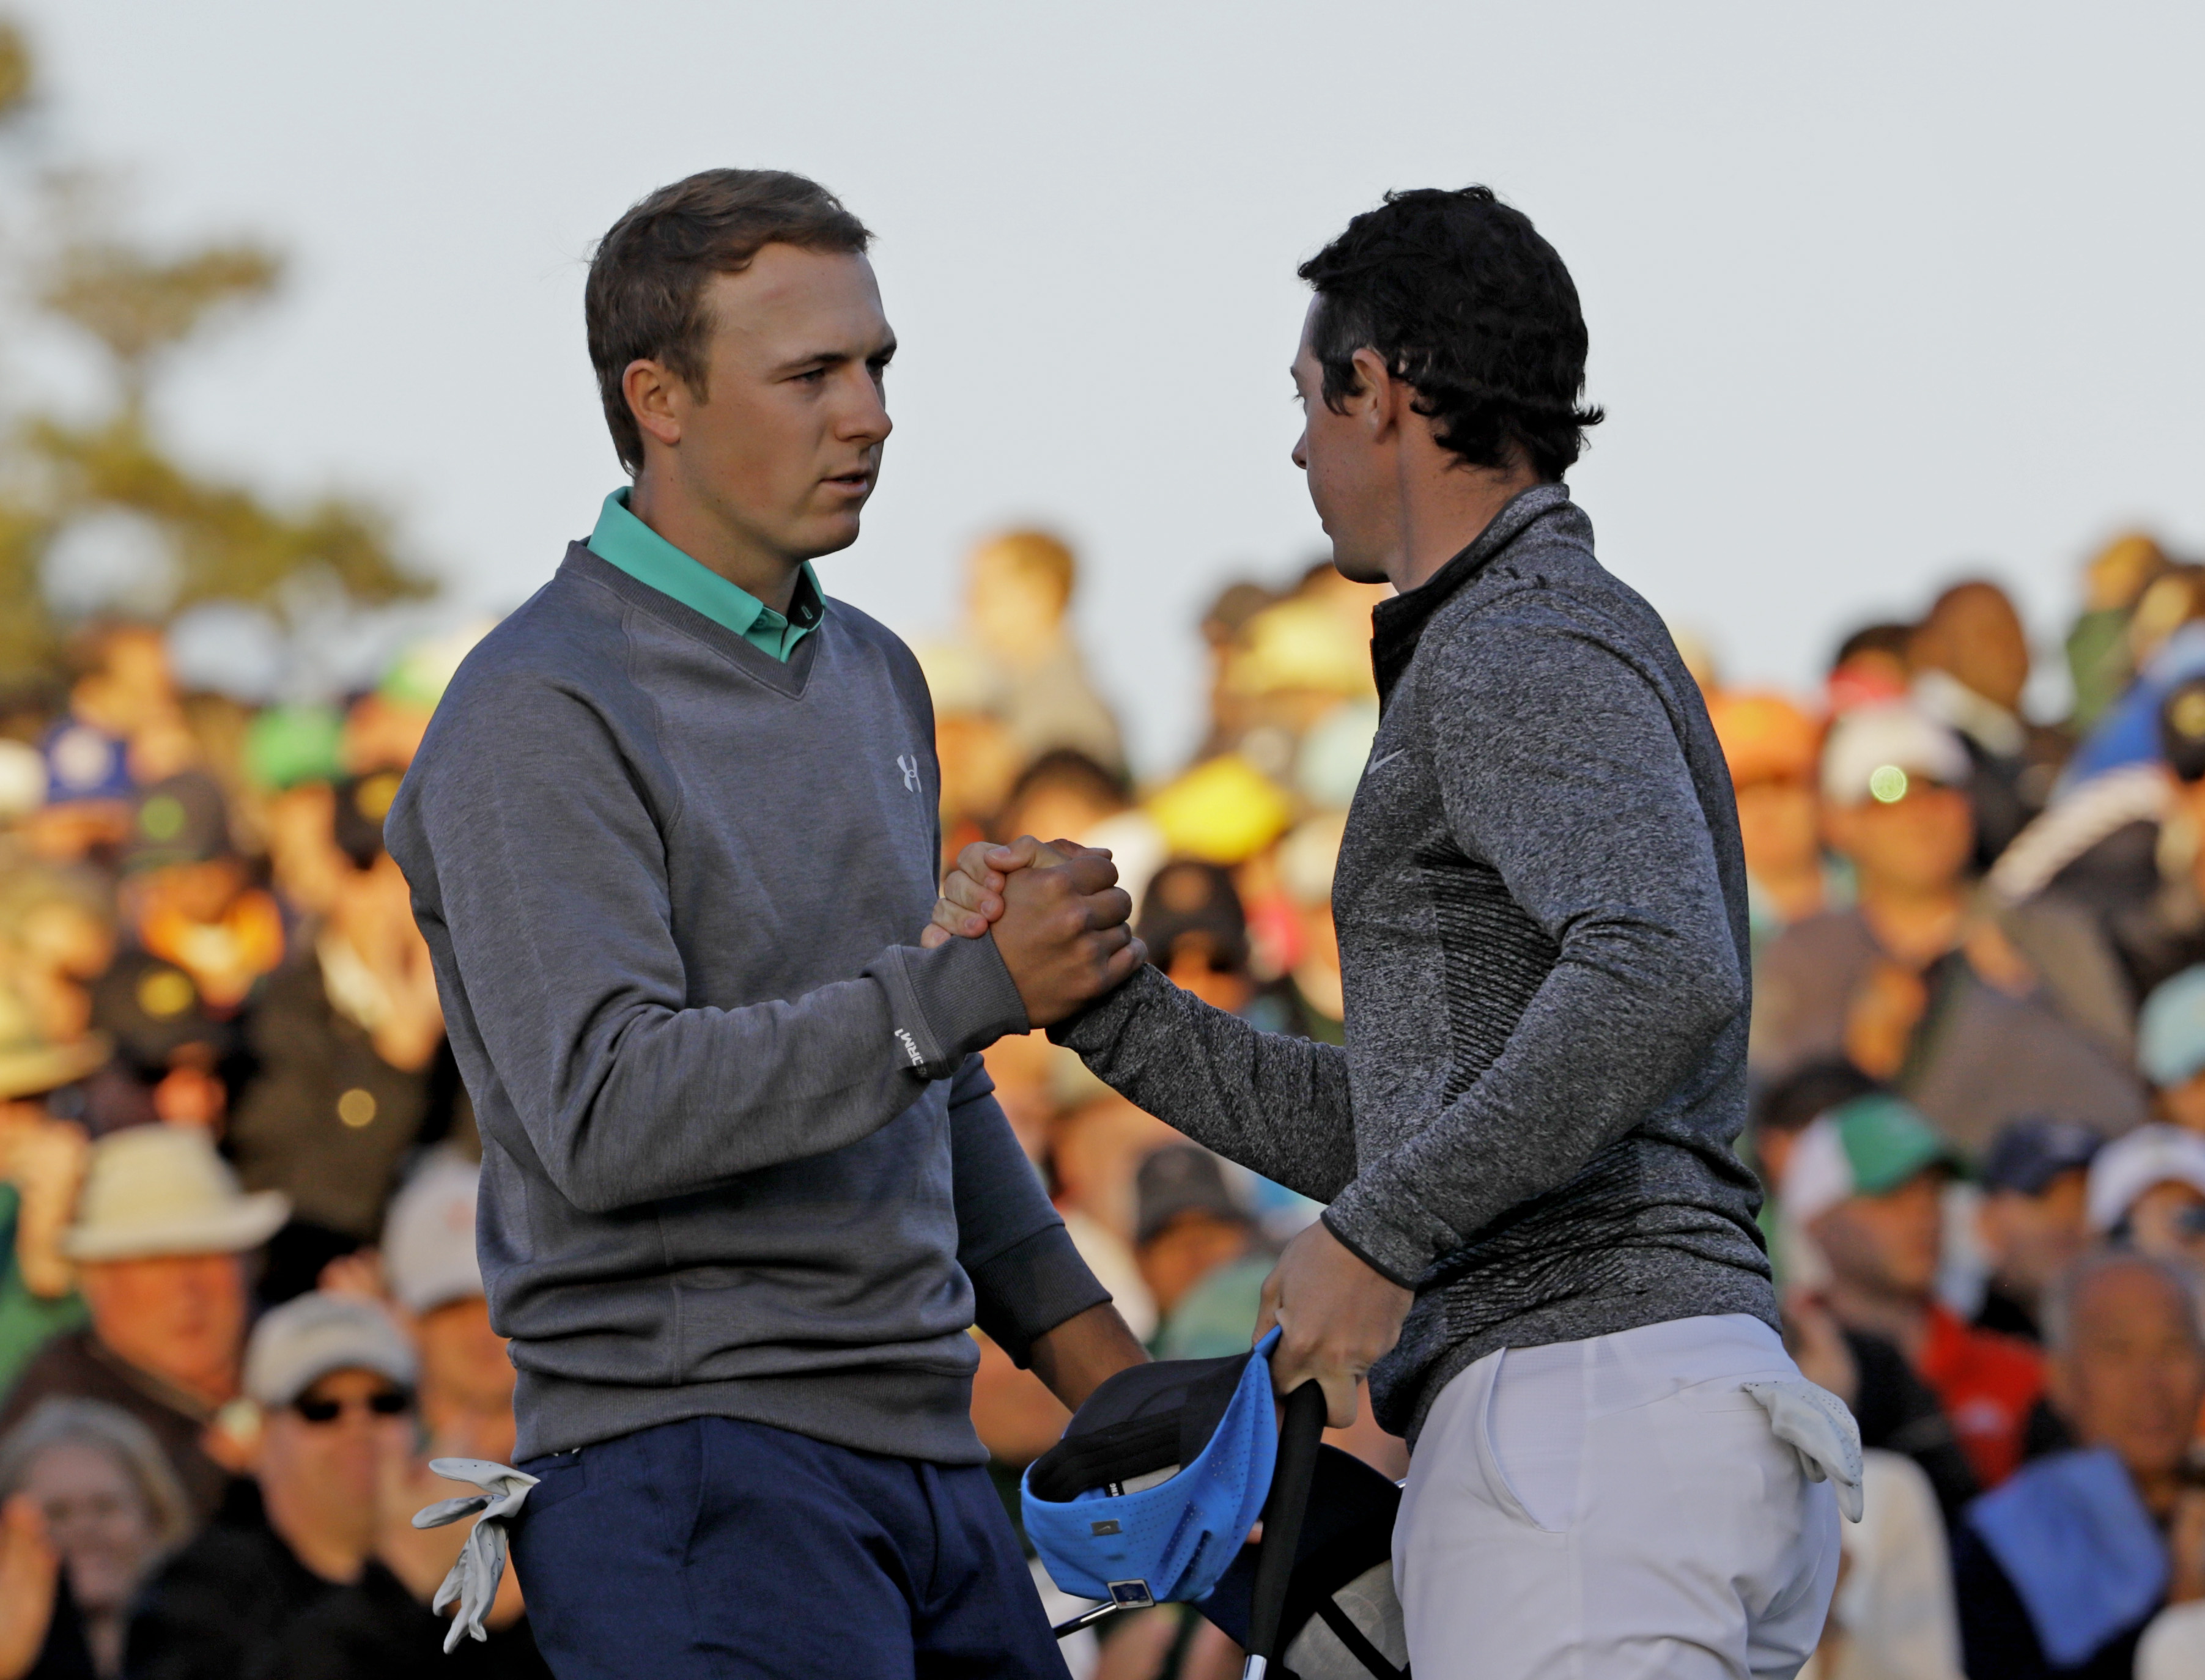 Jordan Spieth, left, shakes hands with Rory McIlroy, of Northern Ireland, on the 18th green during the third round of the Masters golf tournament Saturday, April 9, 2016.